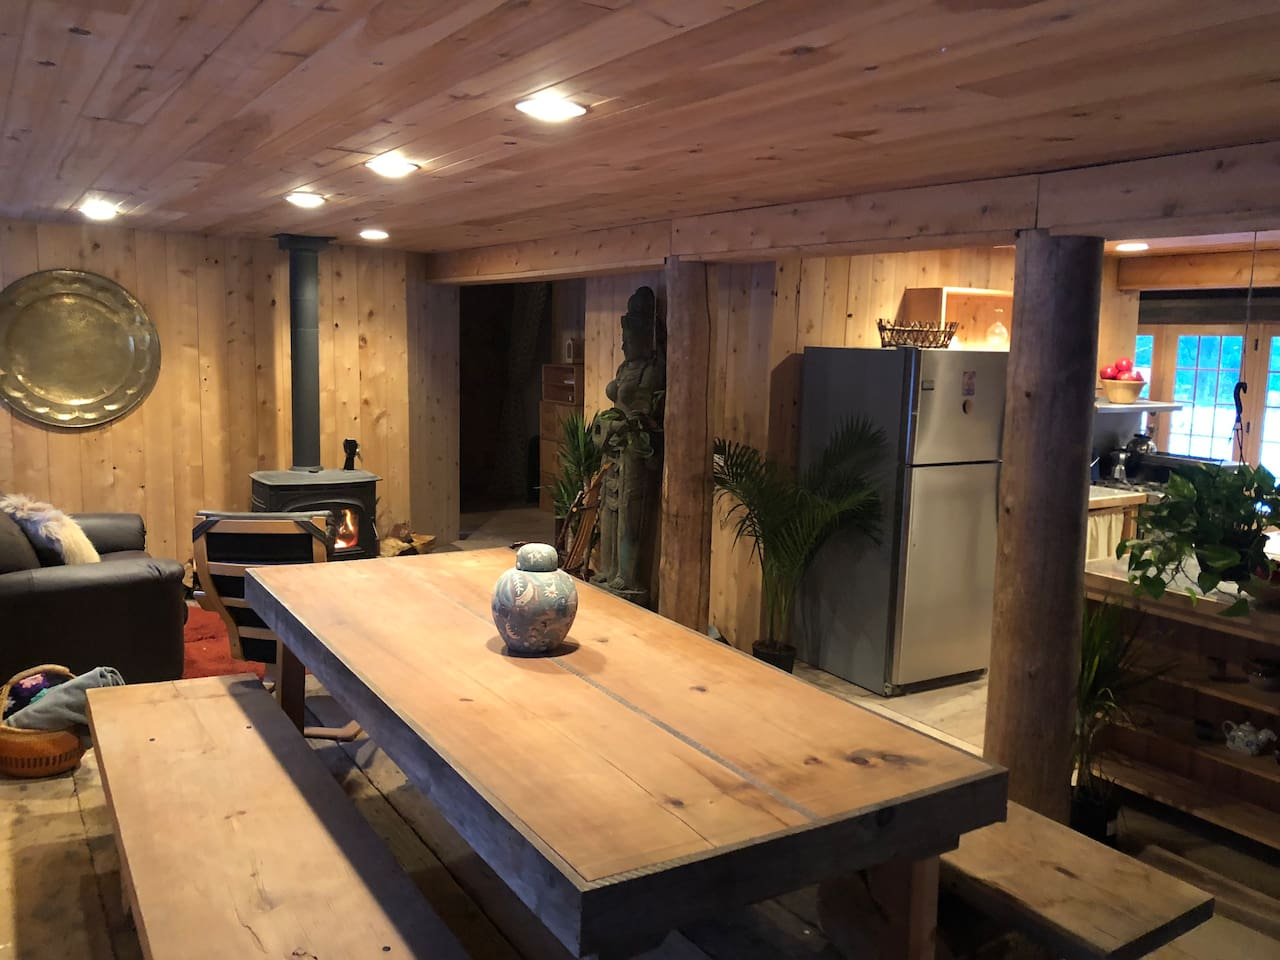 Handmade table and handmade benches that can hold 8-10 people, awesome stove with the cozyness of a fireplace, rustic barn flooring... all very spacious